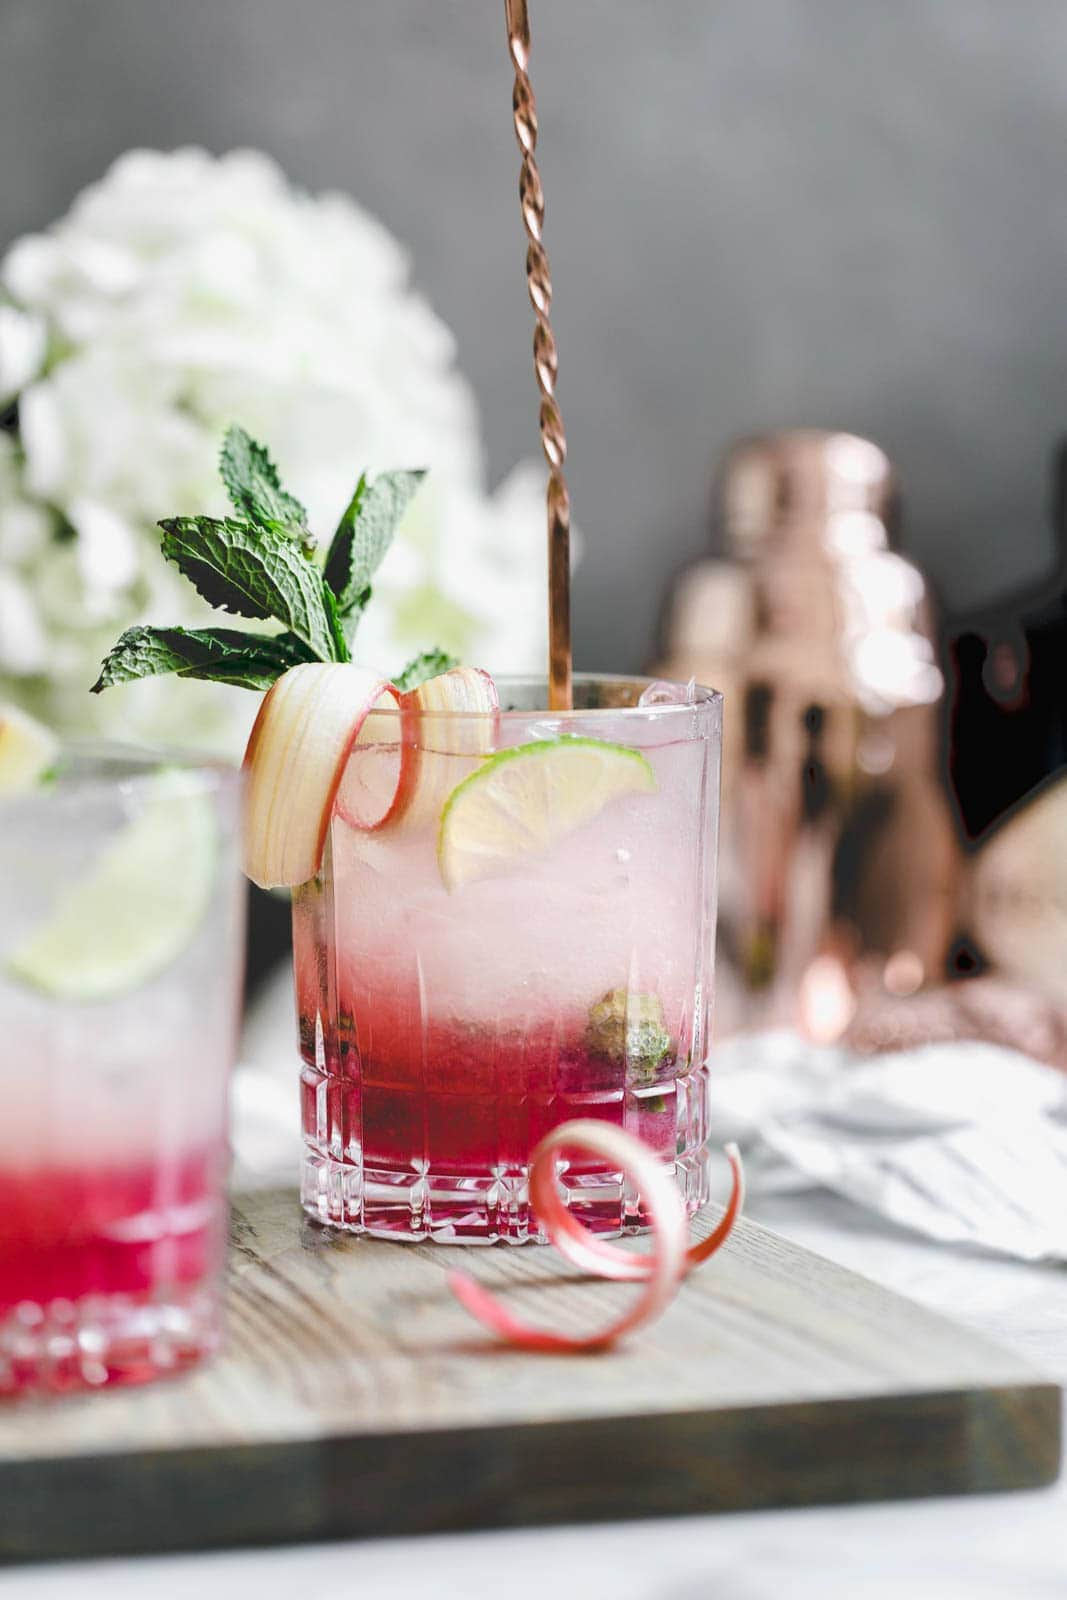 A thirst-quenching Rhubarb Mint Mojito made with rhubarb syrup, fresh mint, and lime. YUM.